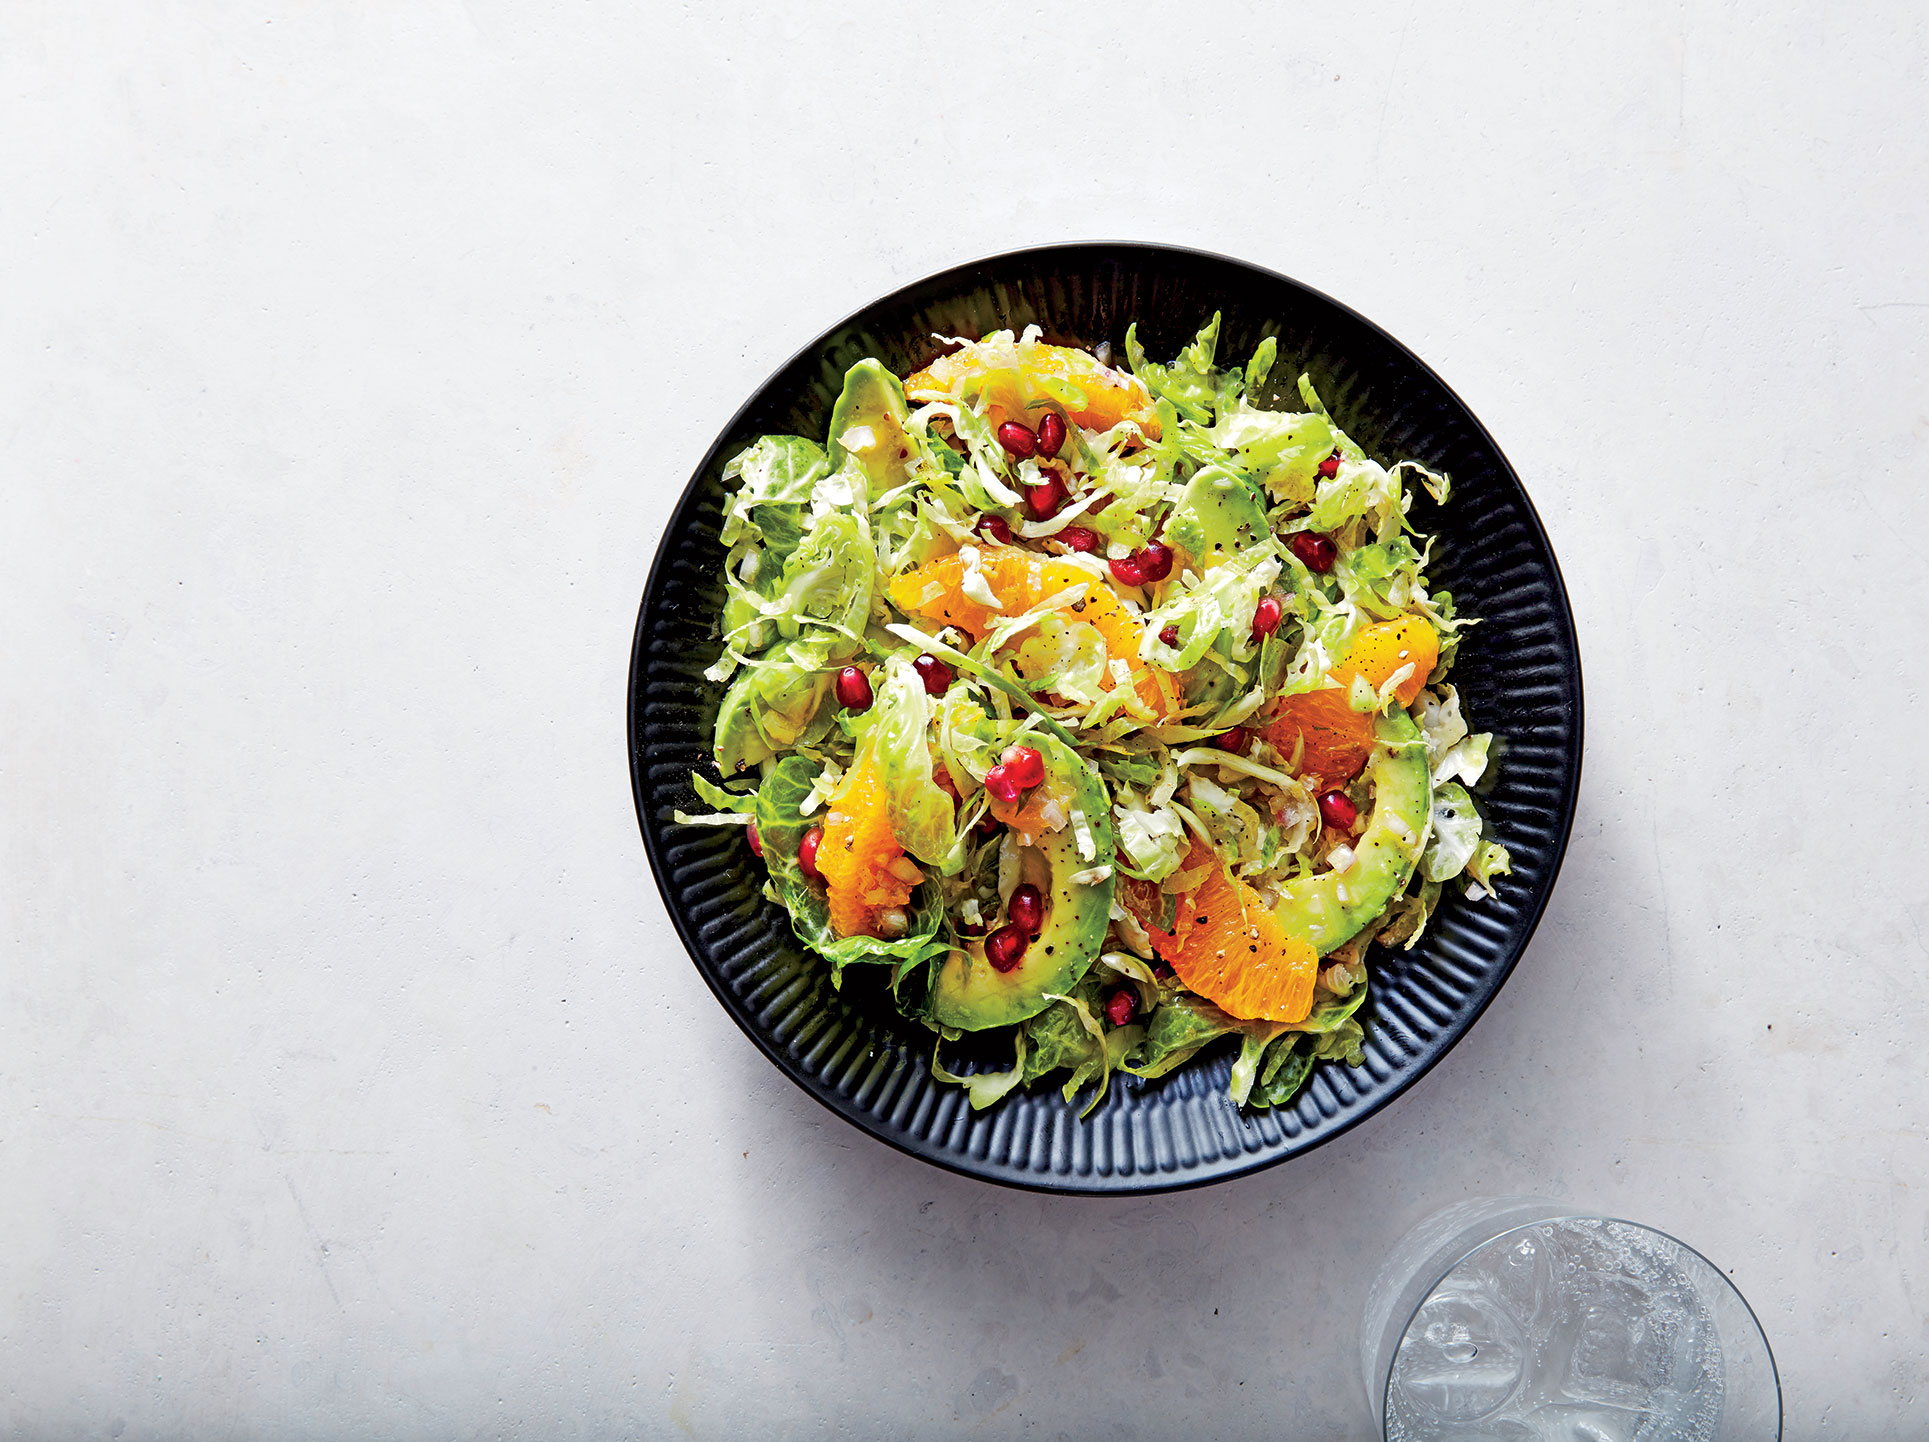 pomegranate-avocado-citrus-brussels-sprouts-salad